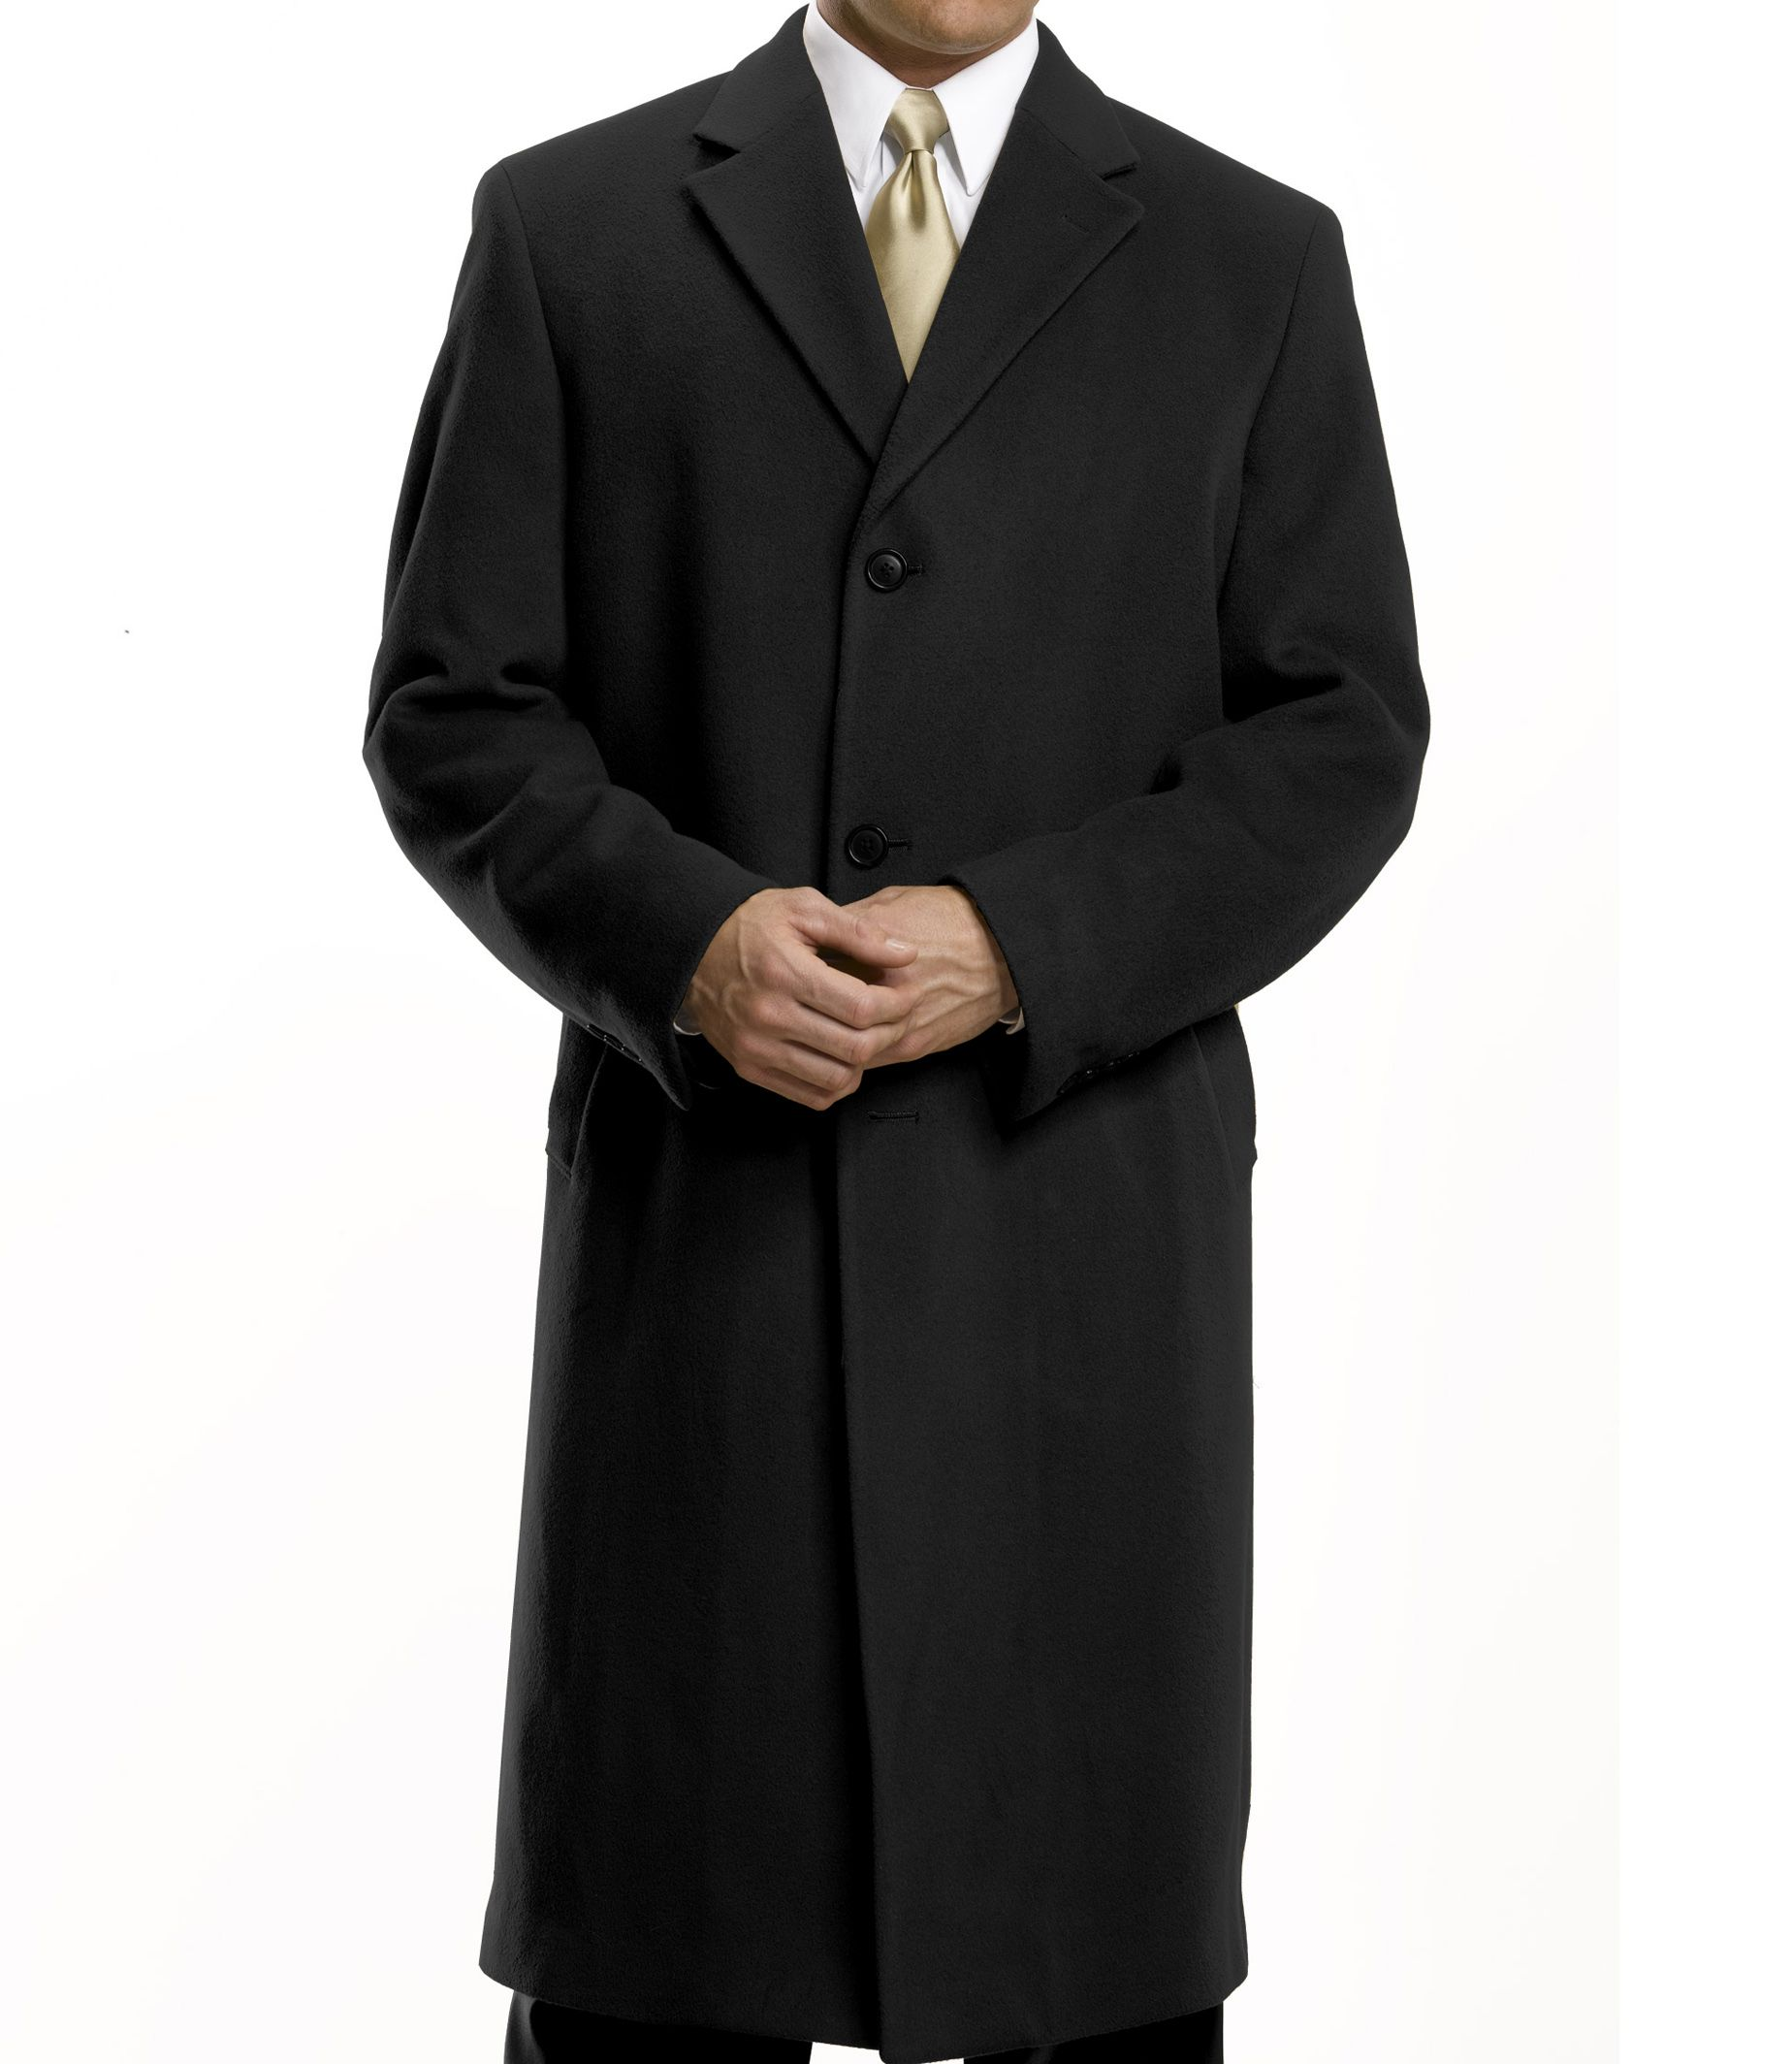 Merino Wool Topcoat Full Length Big/Tall- Sizes 52 - 60